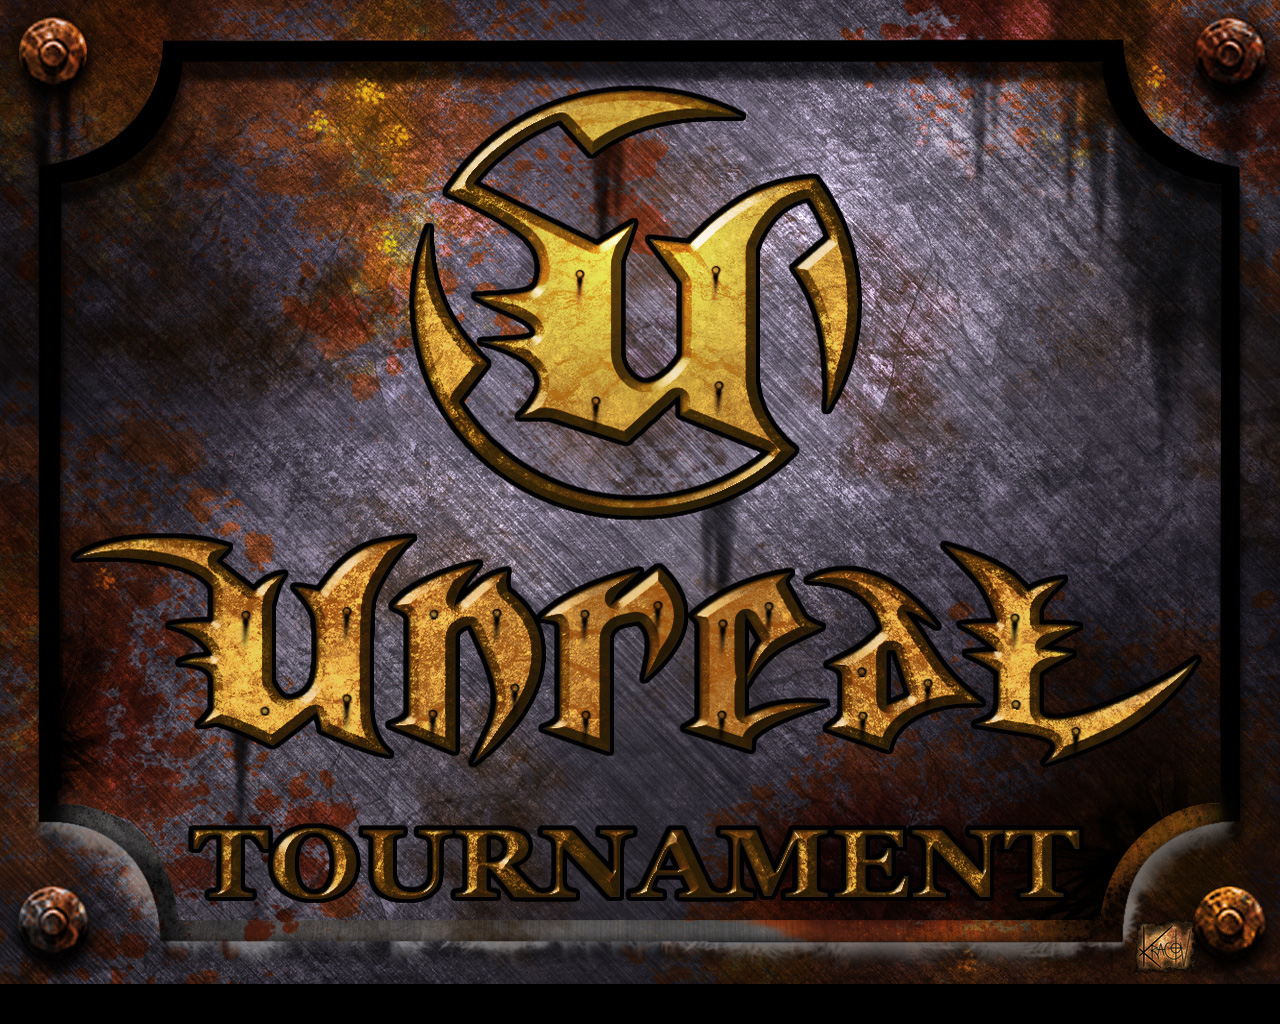 le retour dunreal tournament